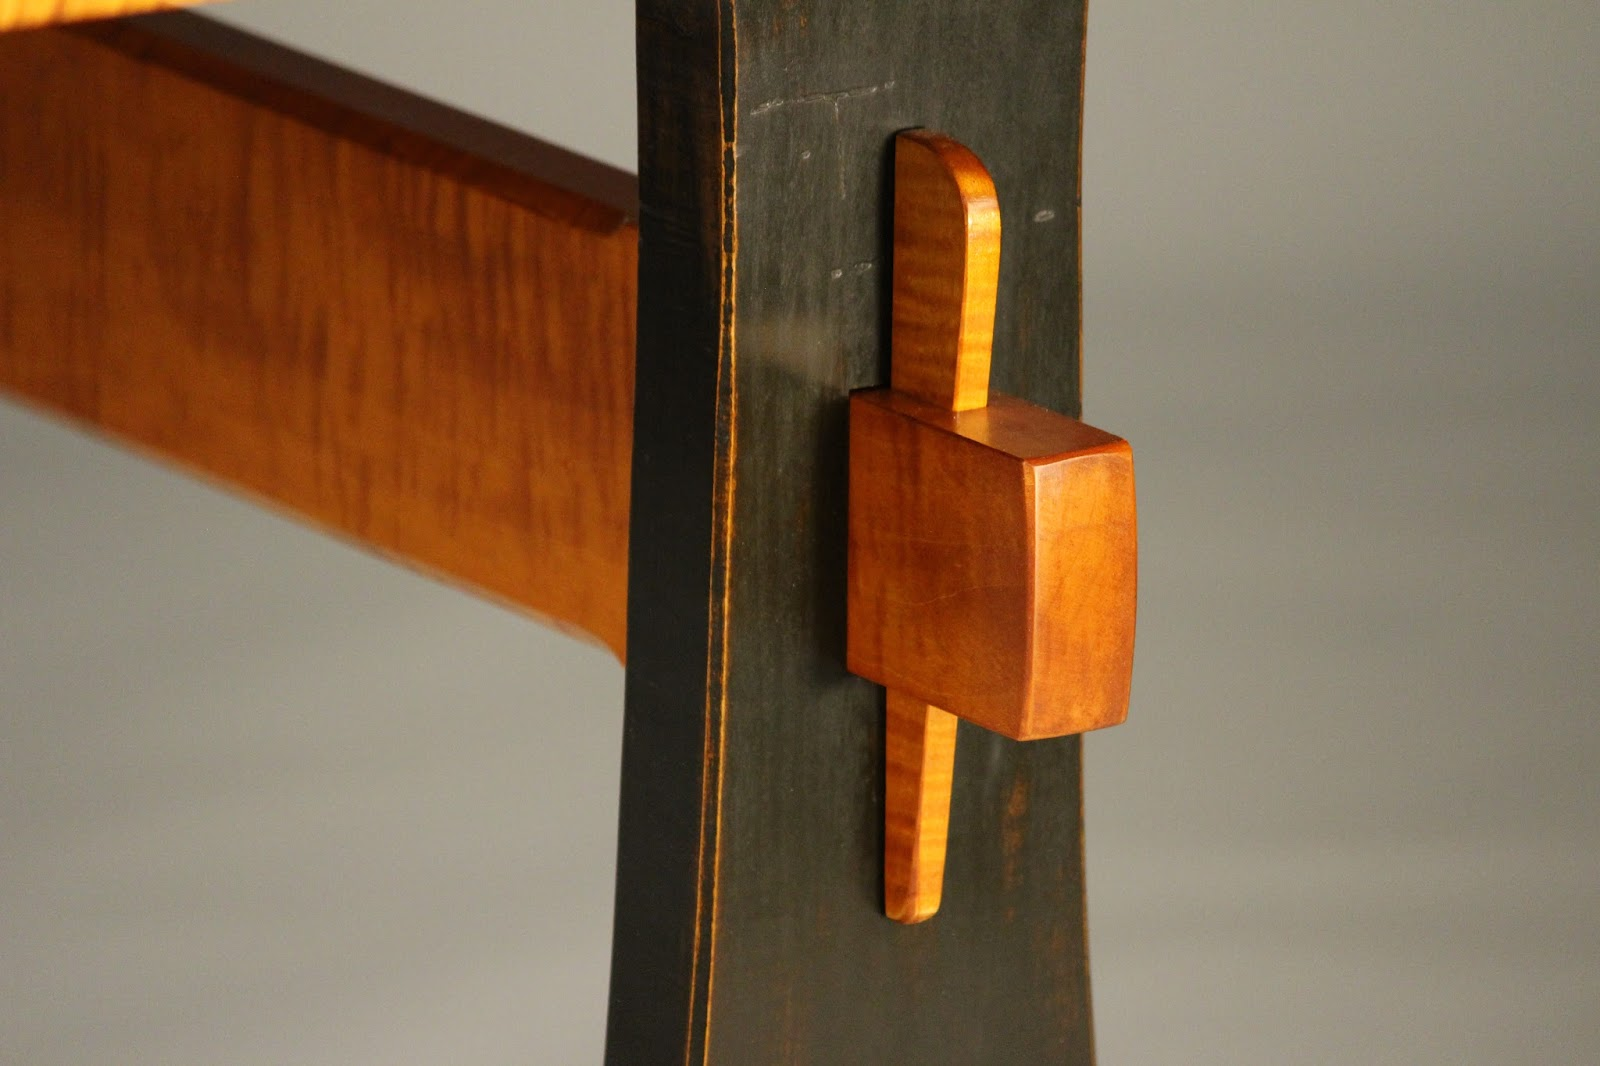 wedged mortise and tenon joinery